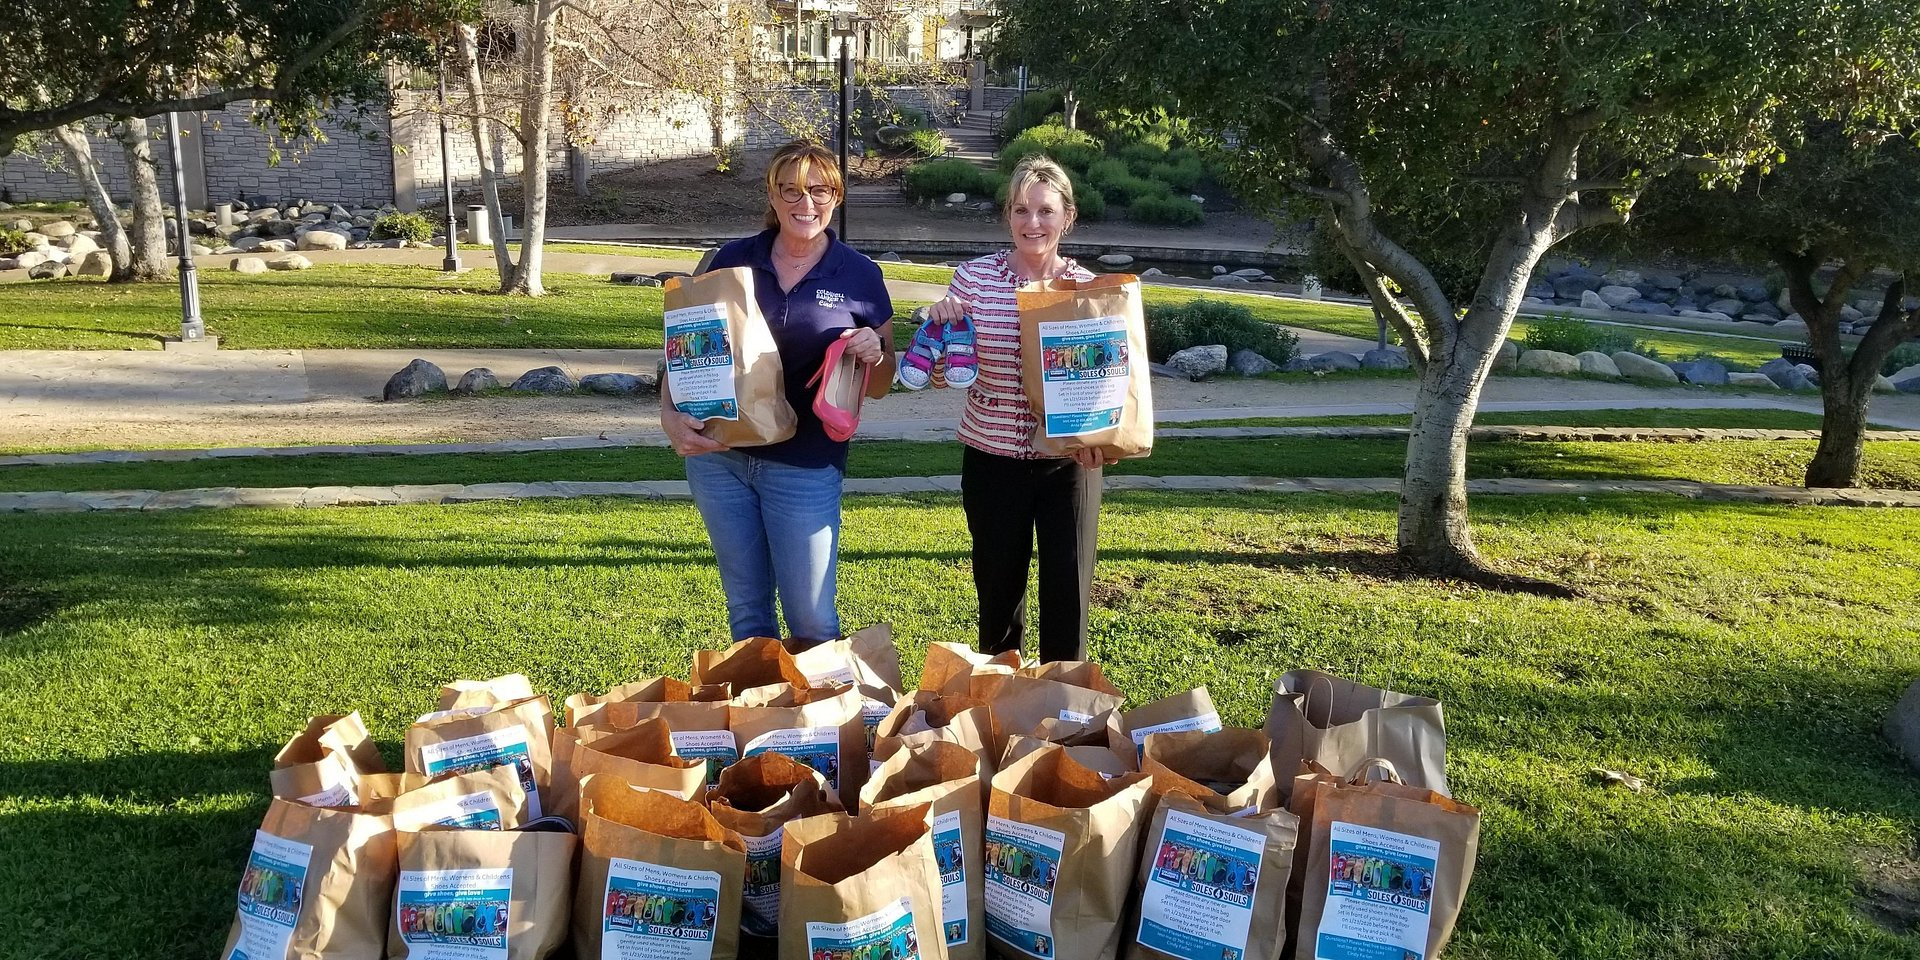 Coldwell Banker's Cindy Farfan & Anita Spencer Collected 115 Pairs of Shoes for Soles4Souls